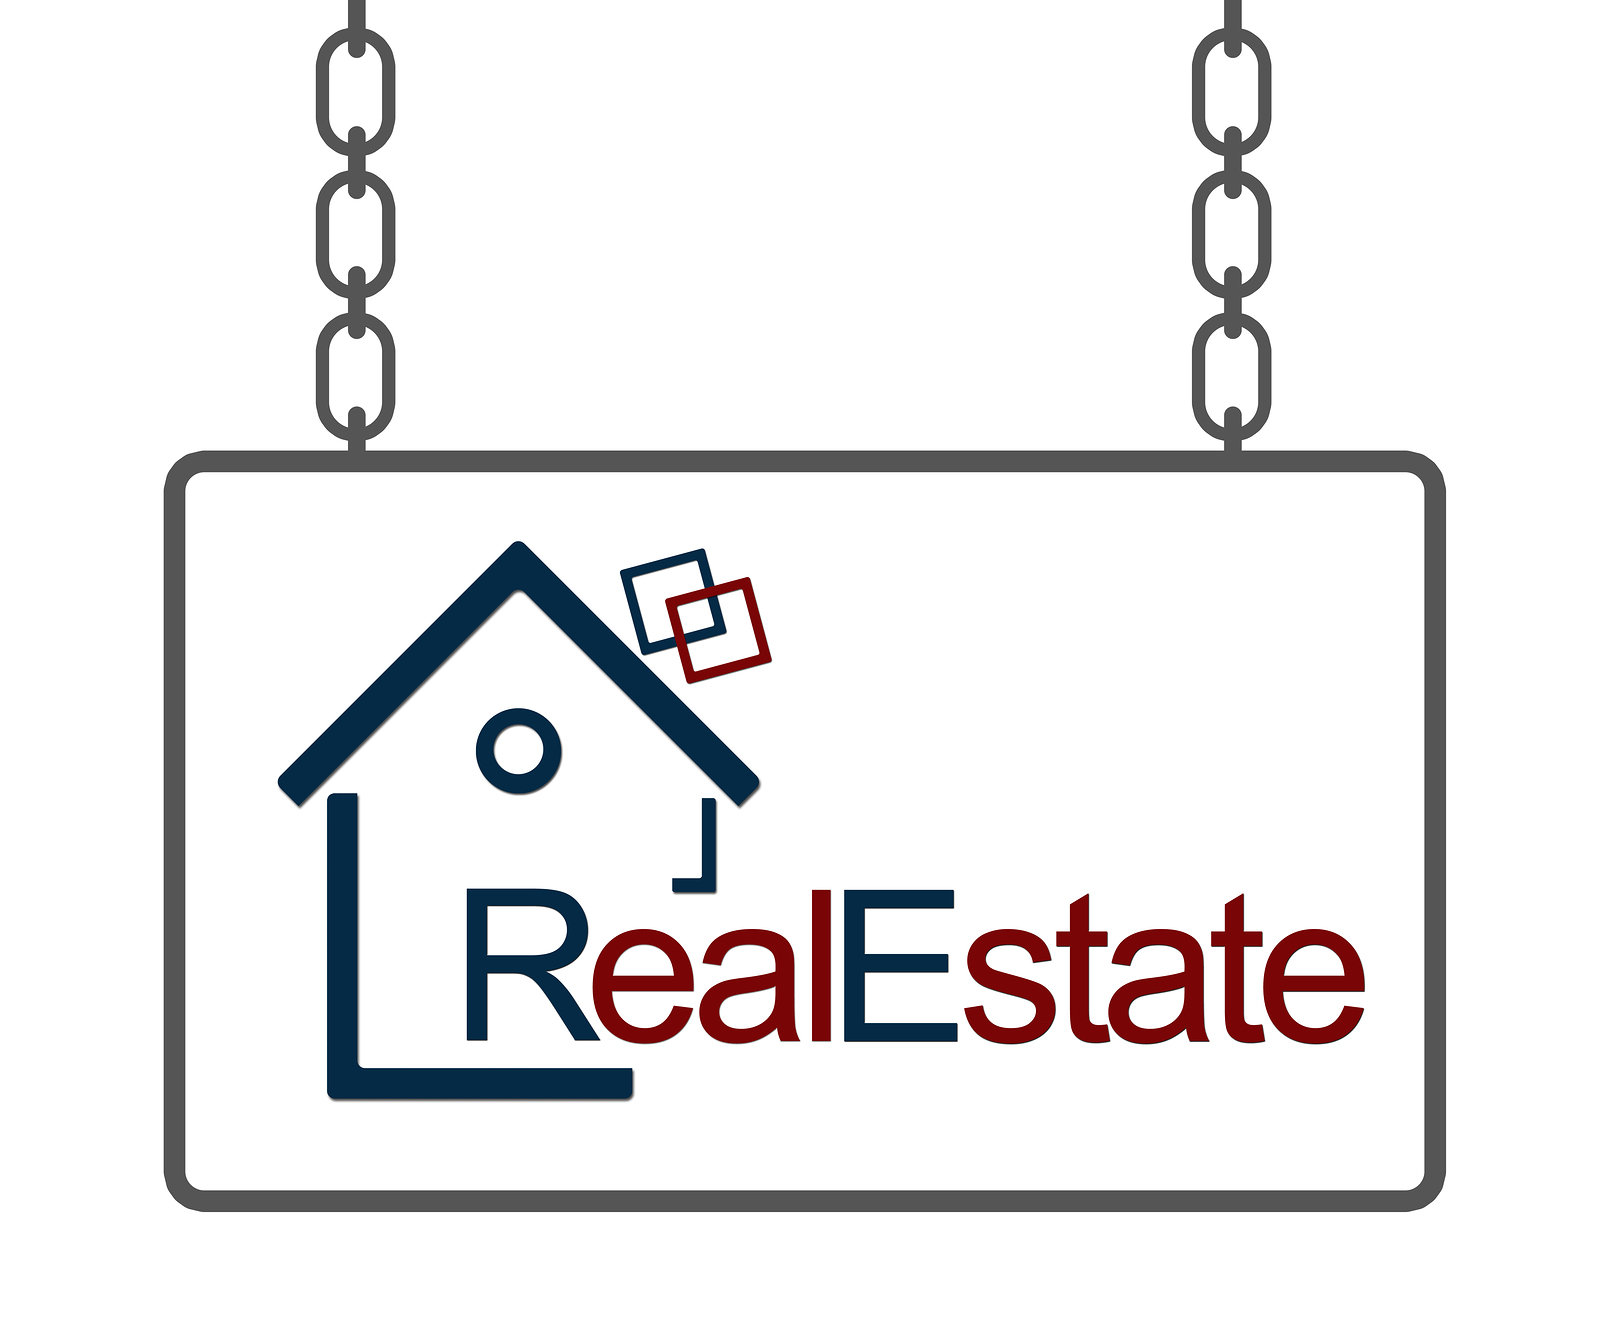 live chat tool for real estate